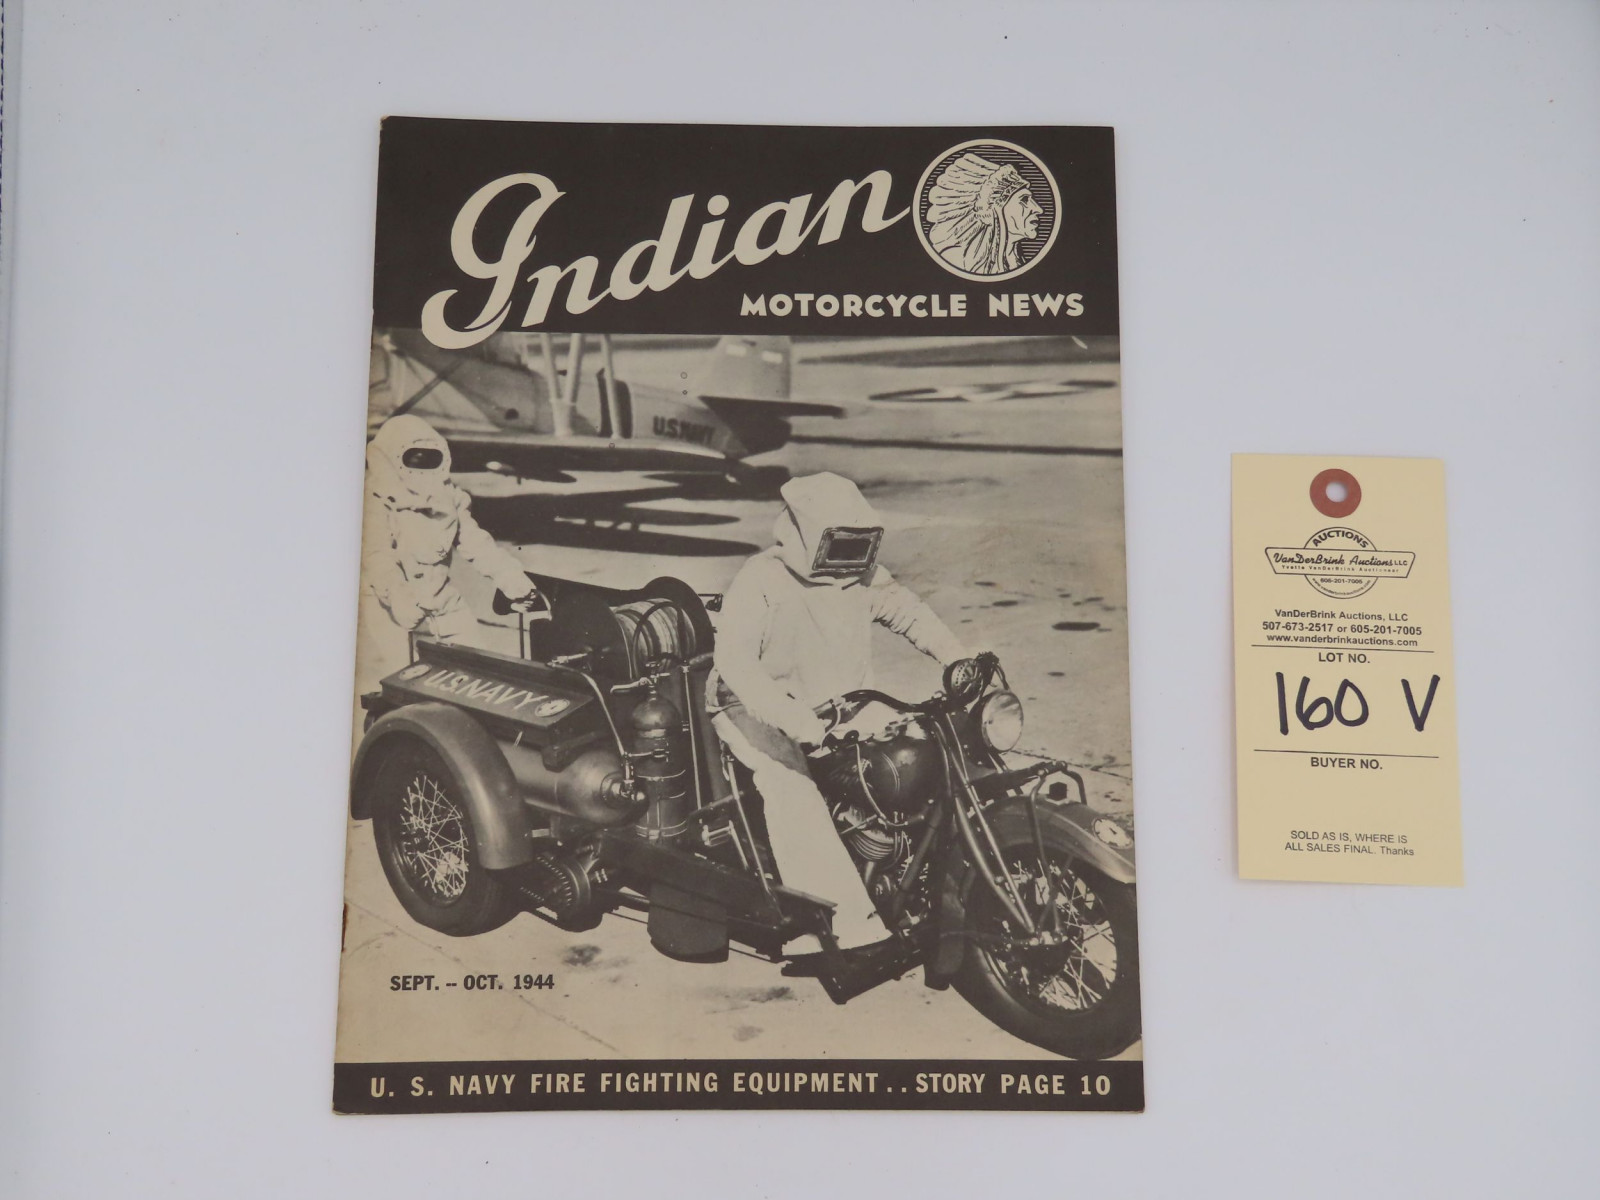 Indian Motorcycle News - 1944 - Image 6